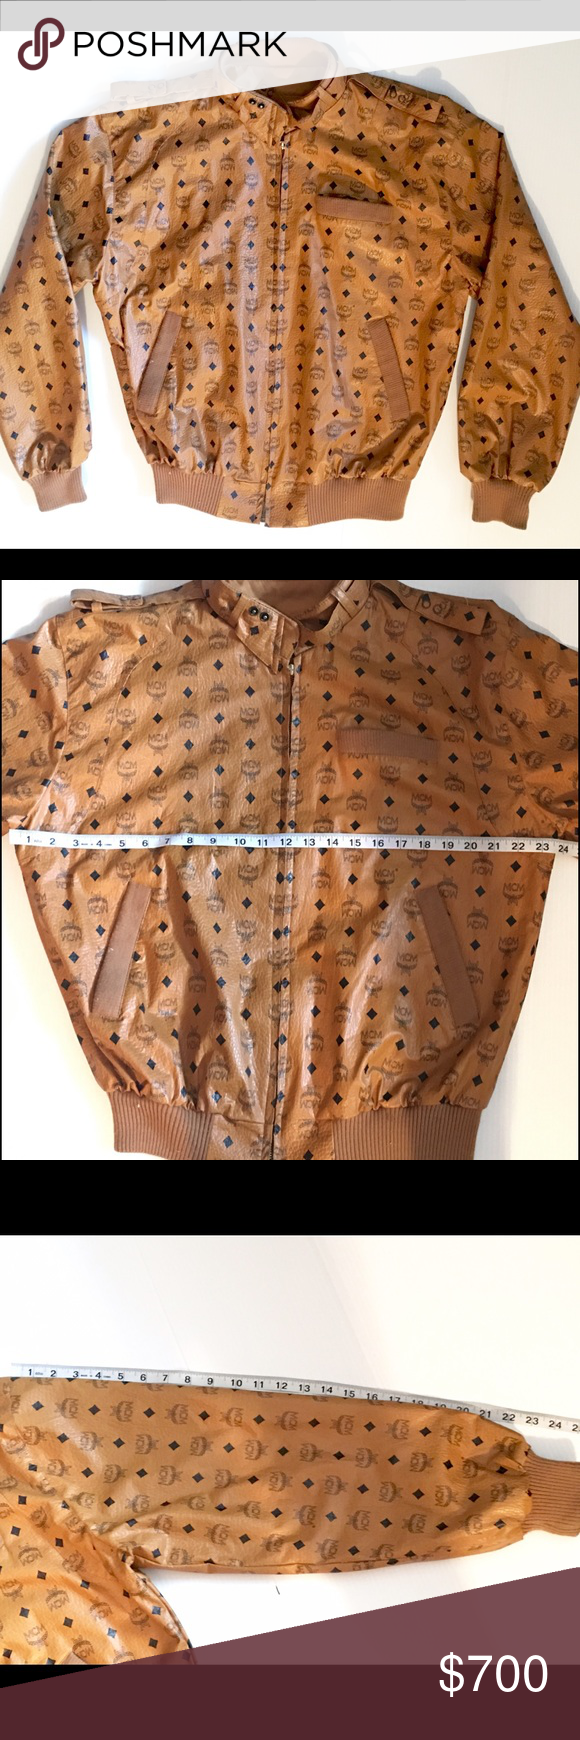 6864badf9 VINTAGE MCM MONOGRAM FAUX LEATHER JACKET MED In good condition. MCM ...